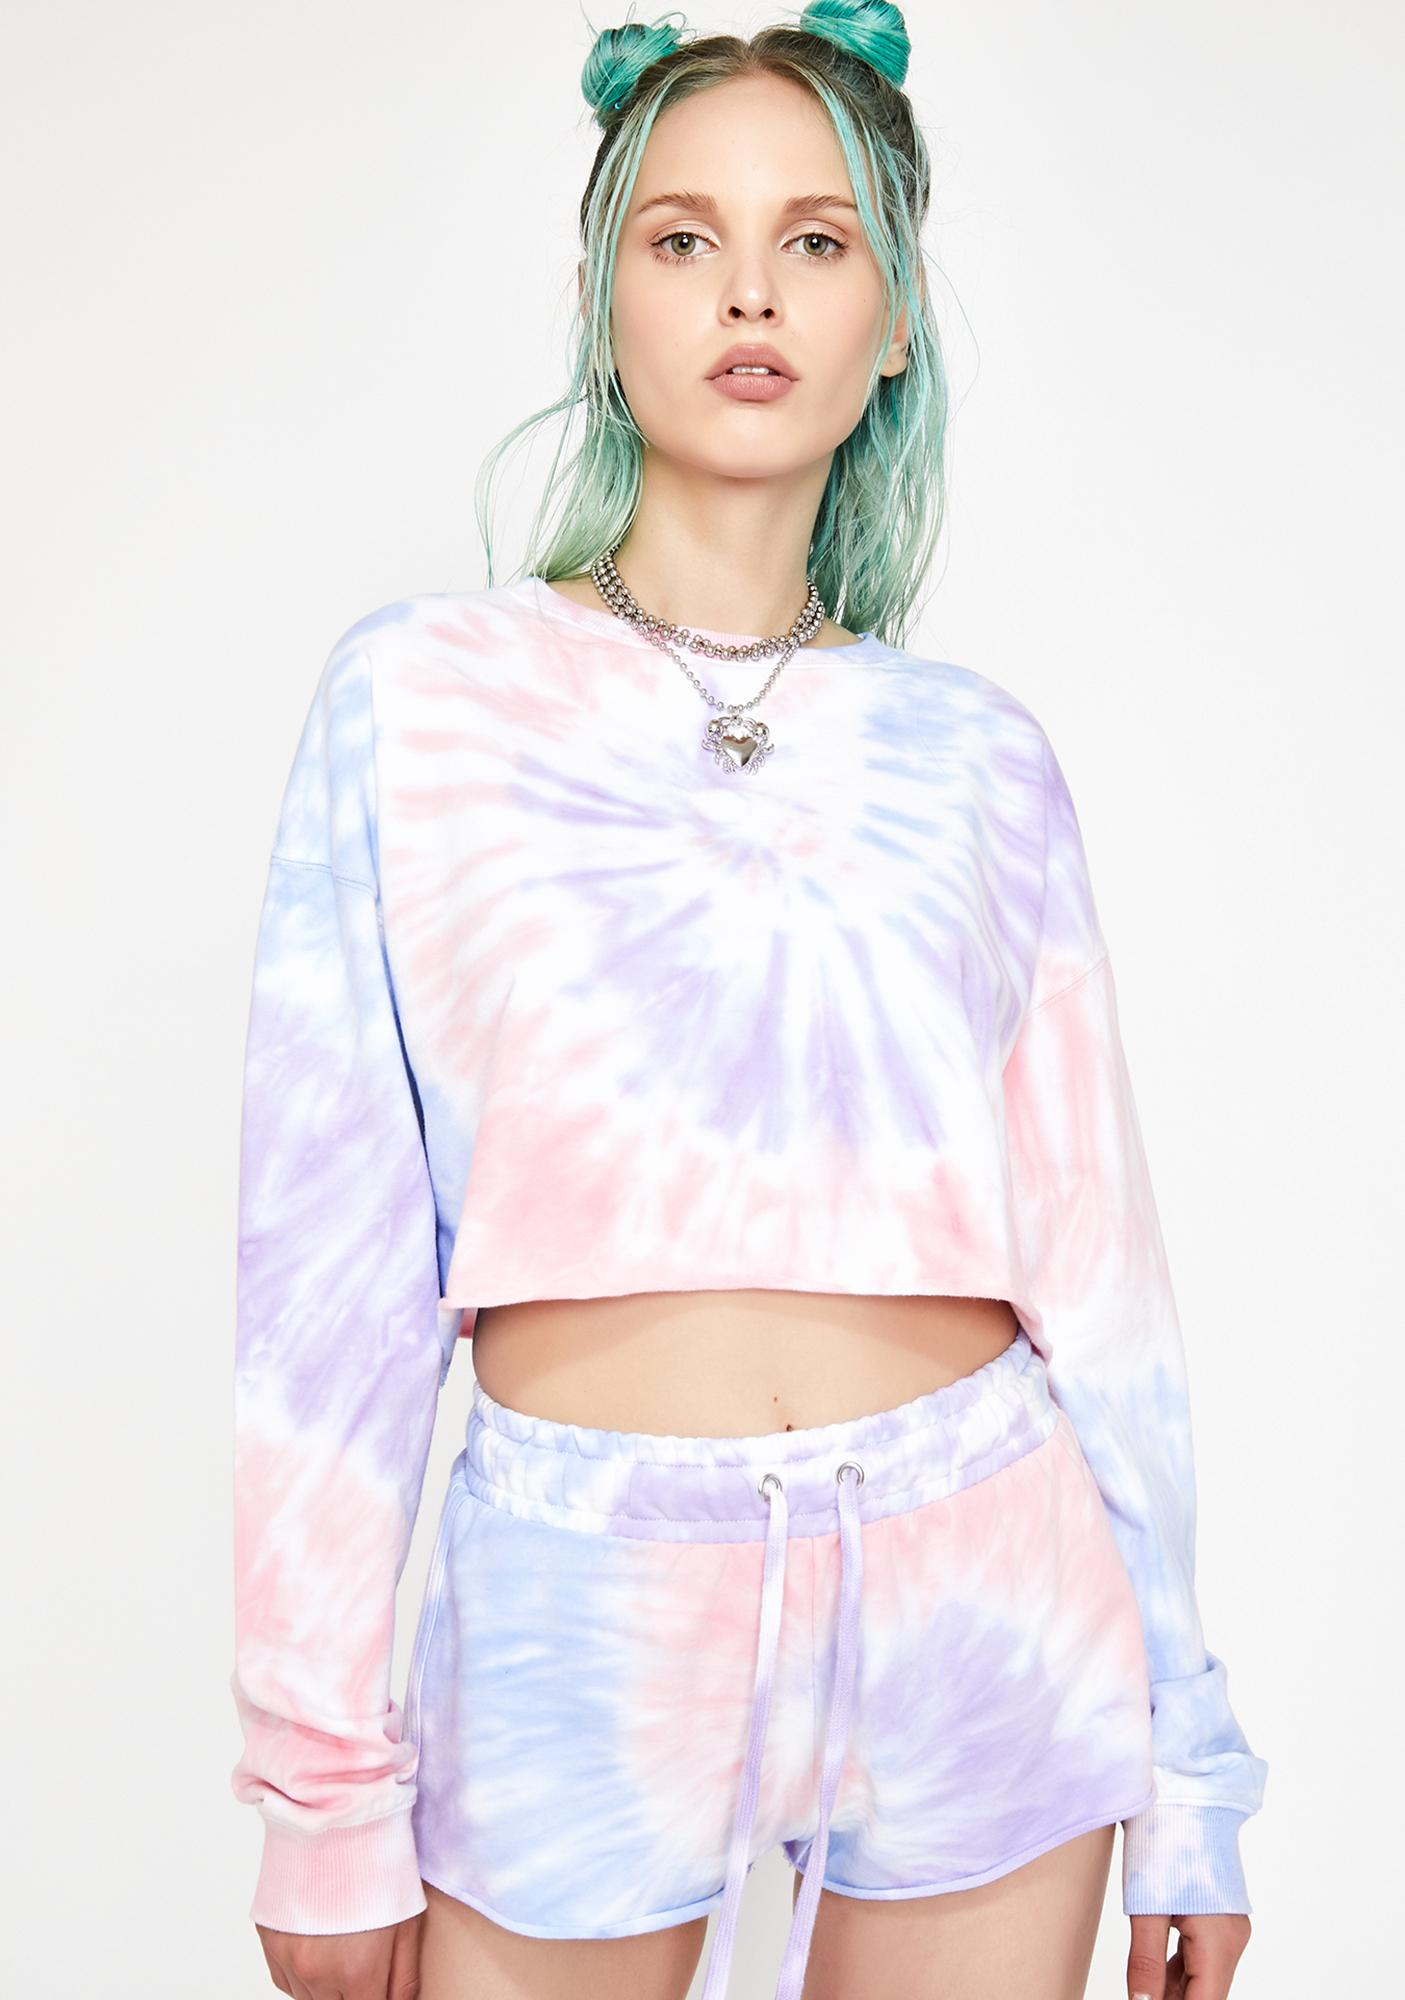 HOROSCOPEZ Moody Mystic Crop Sweatshirt